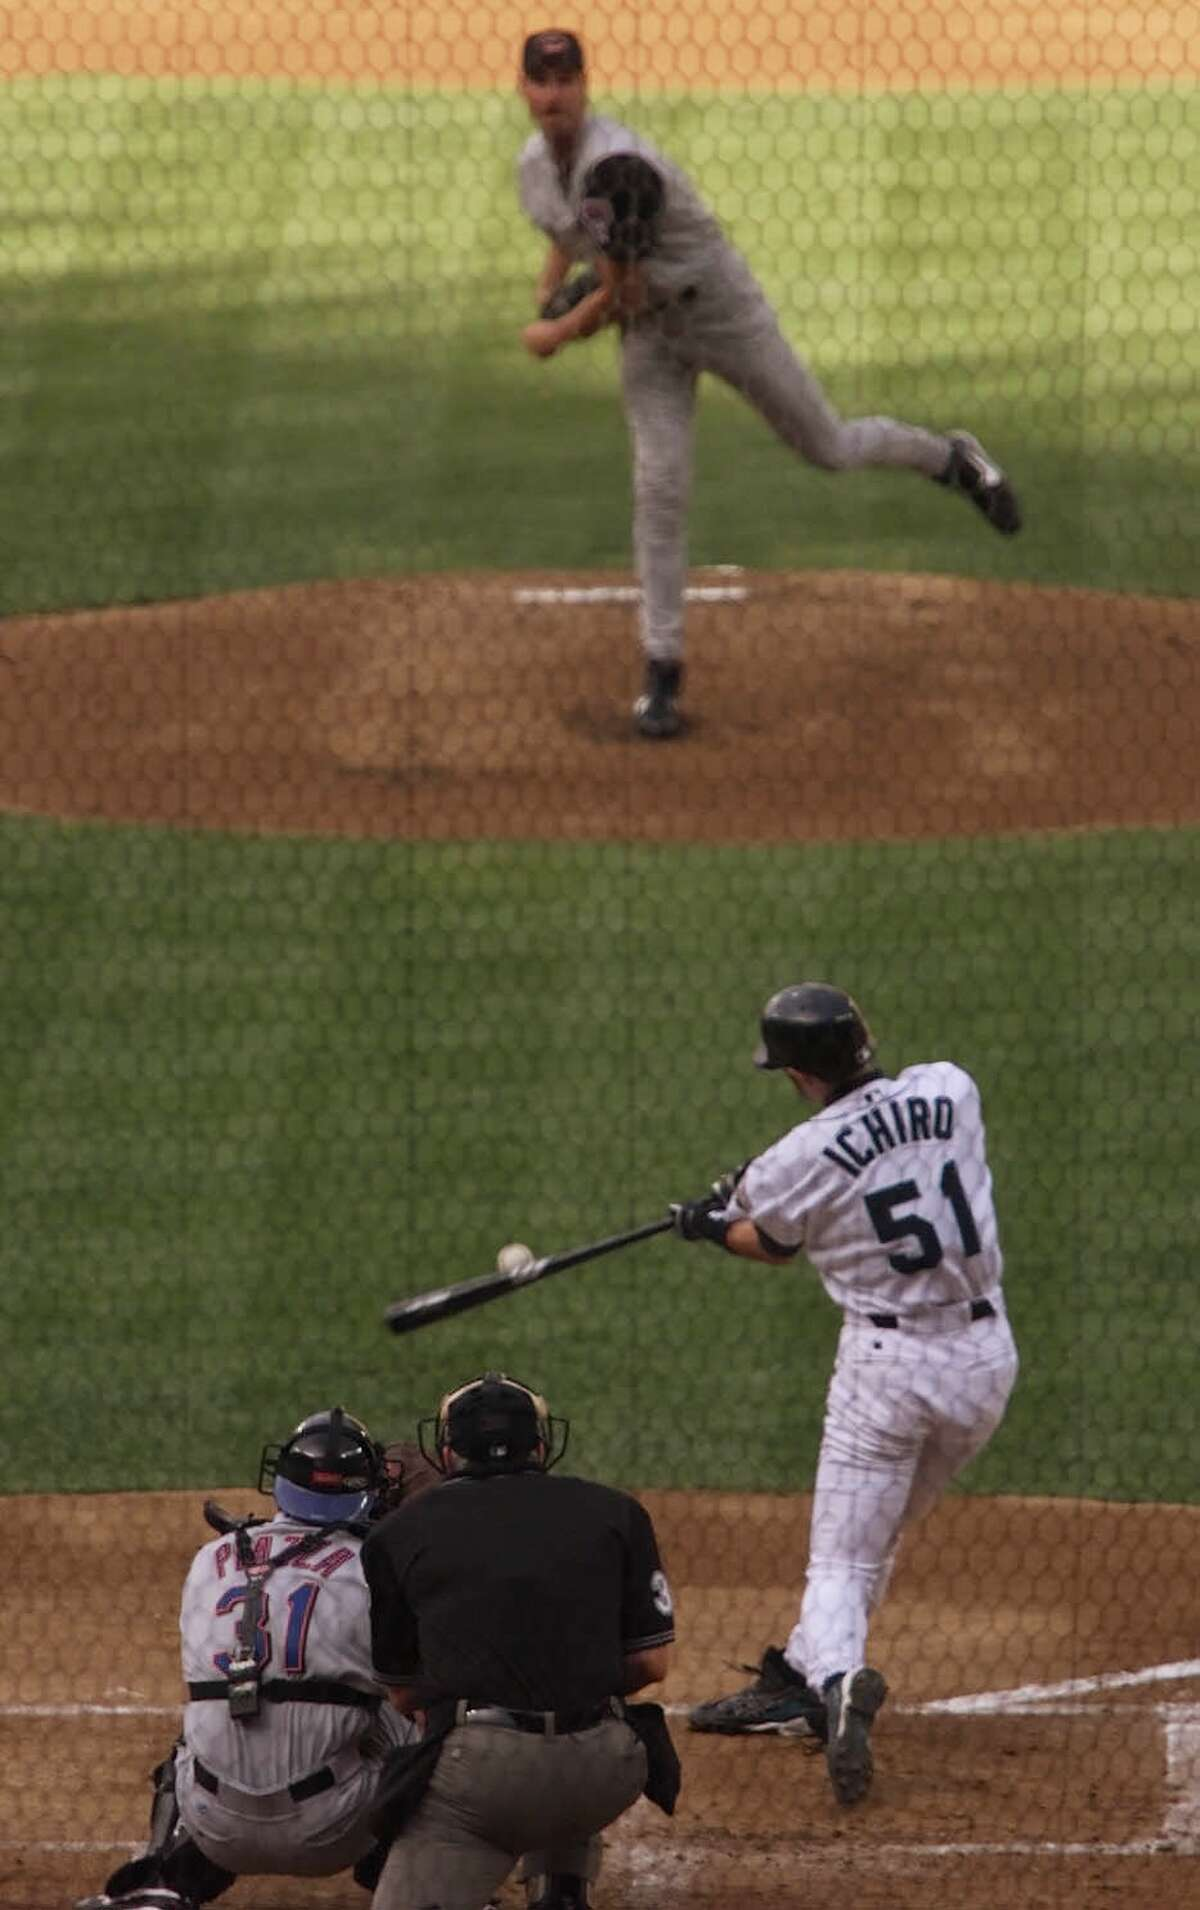 Ichiro Suzuki connects for a hit off Randy Johnson in his first at bat during the All Star Game on July 10, 2001 at Safeco Field.